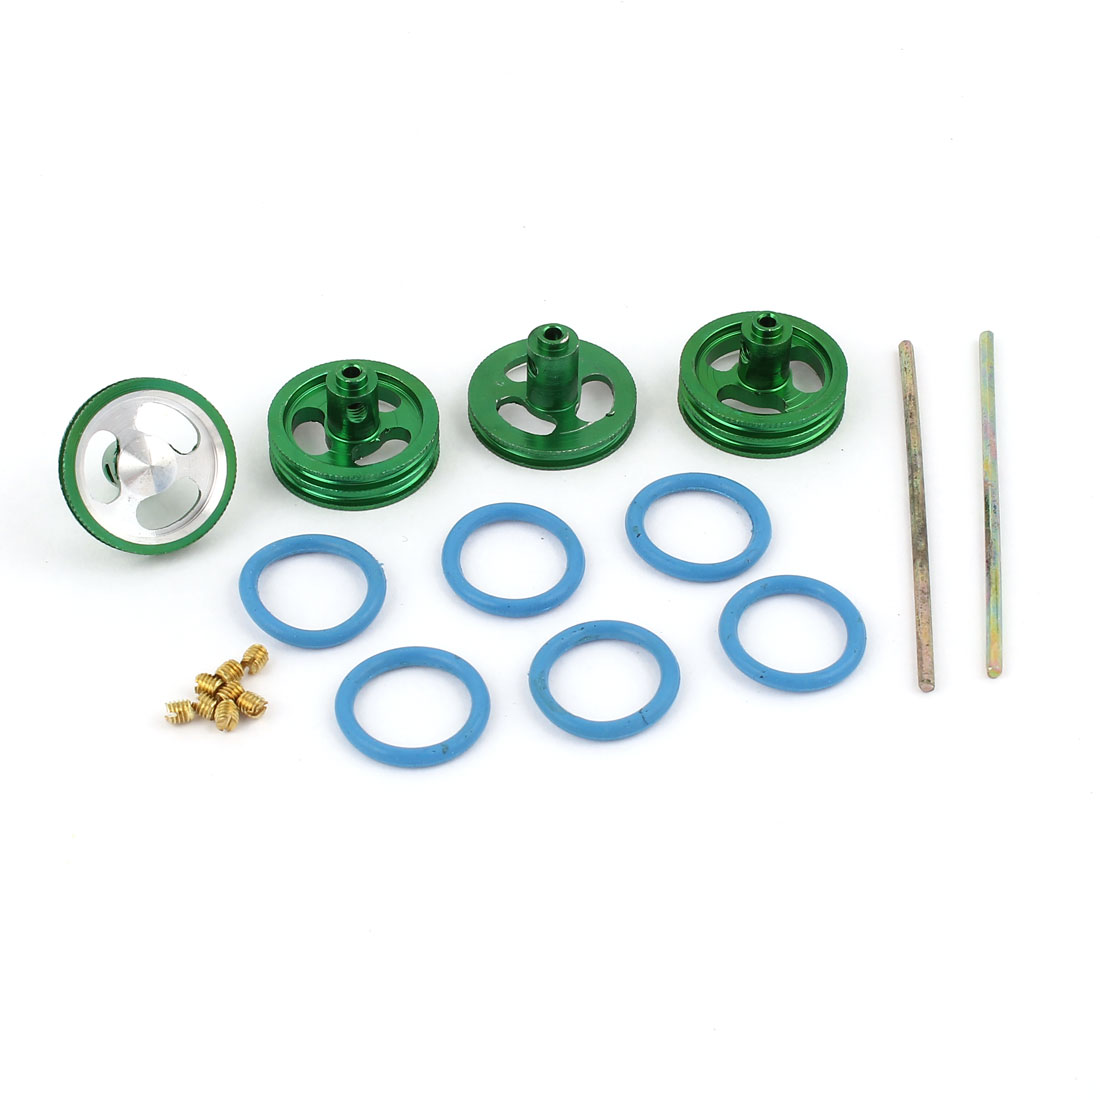 4Pcs 21mm x 3mm 3-Spoke Green Aluminum Wheel Rim Set for RC On-Road 4WD Racer Car